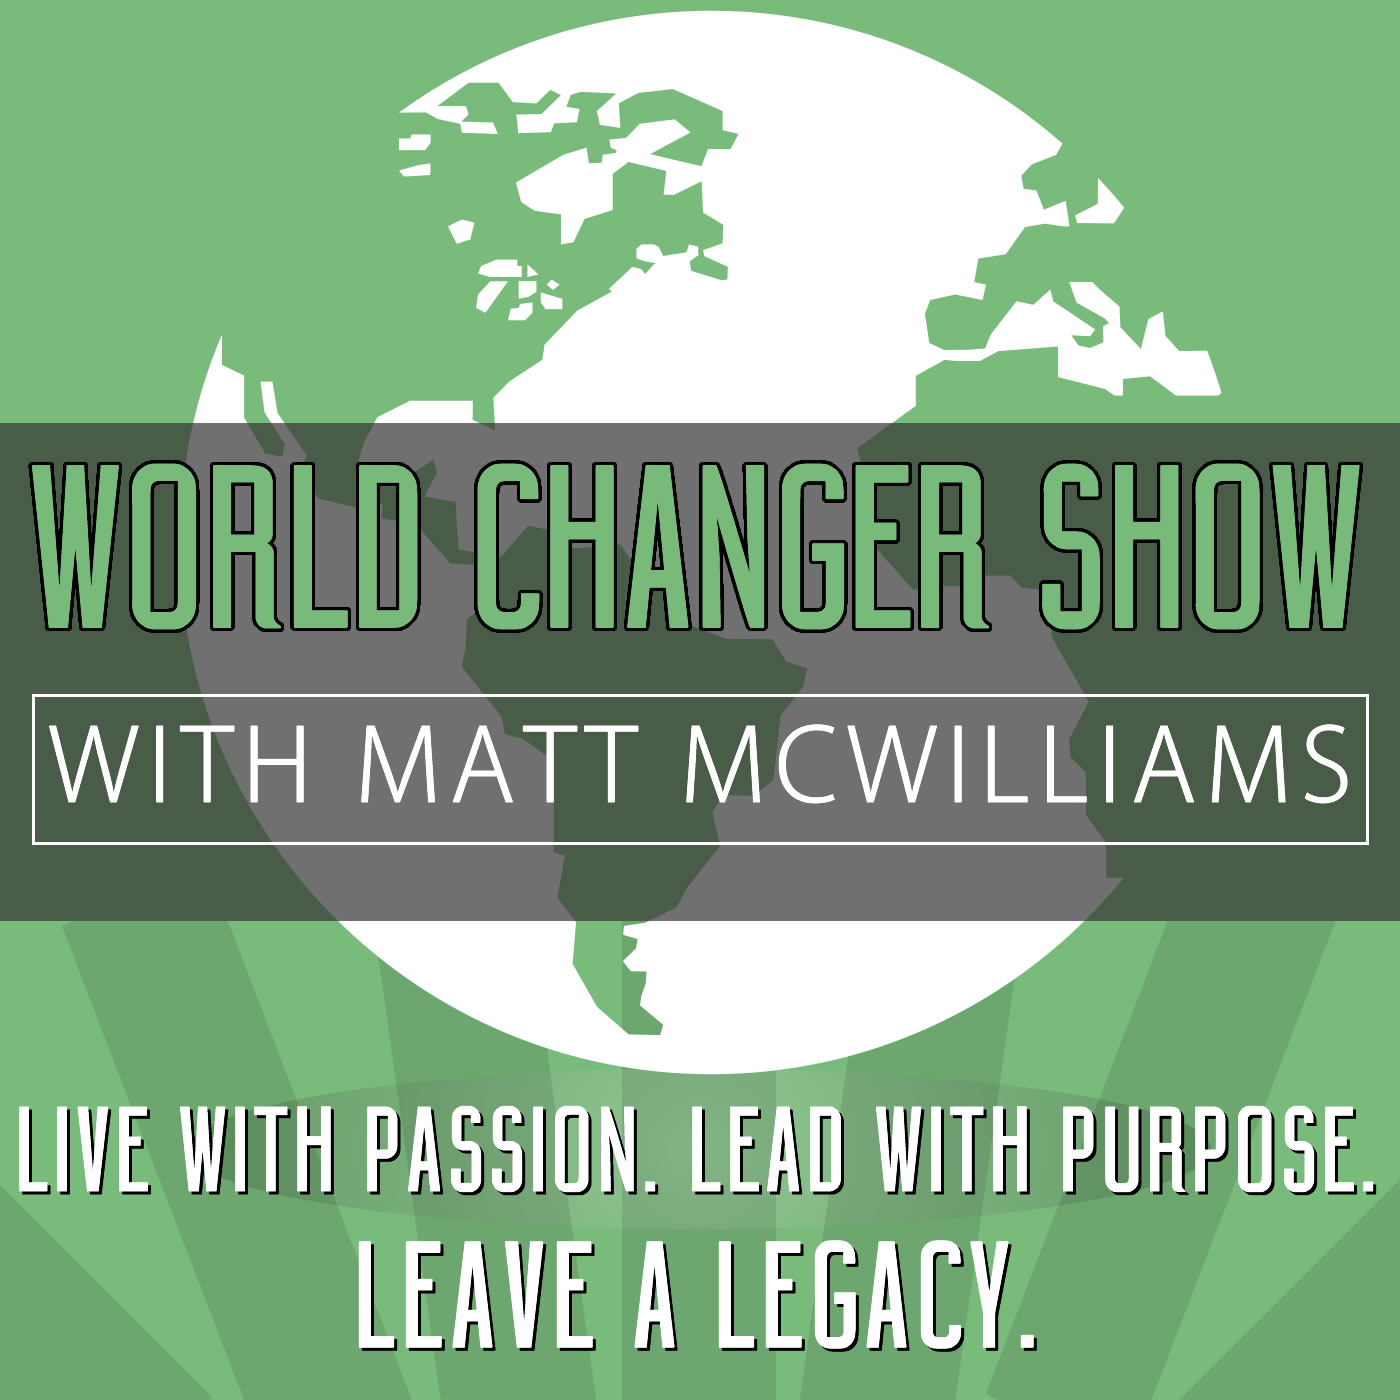 The World Changer Show Podcast with Matt McWilliams